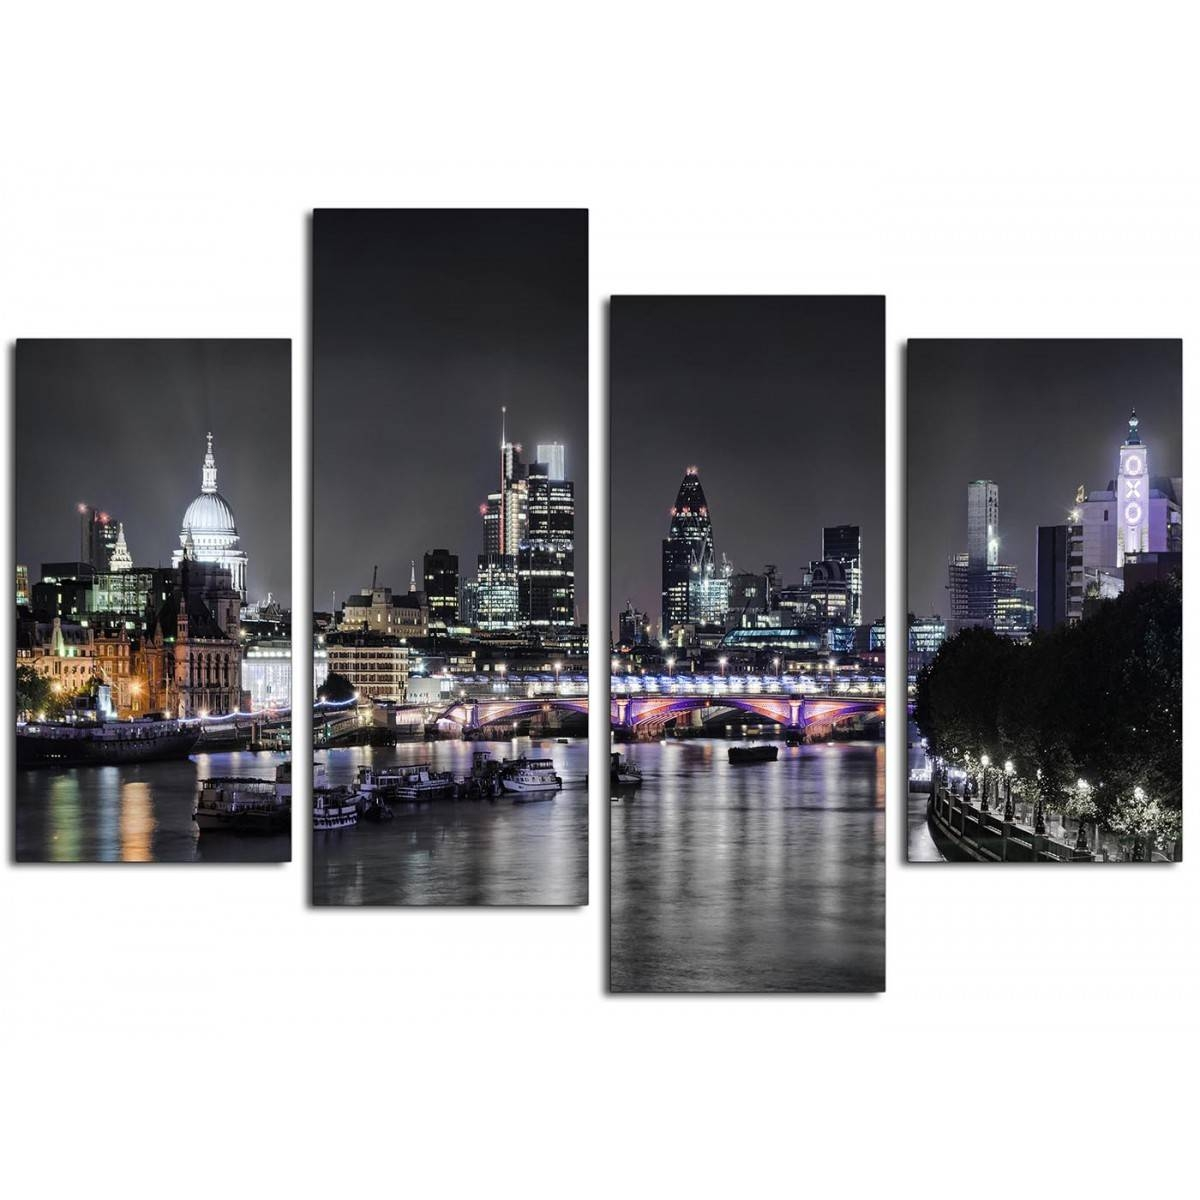 Canvas Wall Art Of London Skyline For Your Living Room – 4 Panel Pertaining To Most Recently Released Cityscape Canvas Wall Art (View 14 of 20)